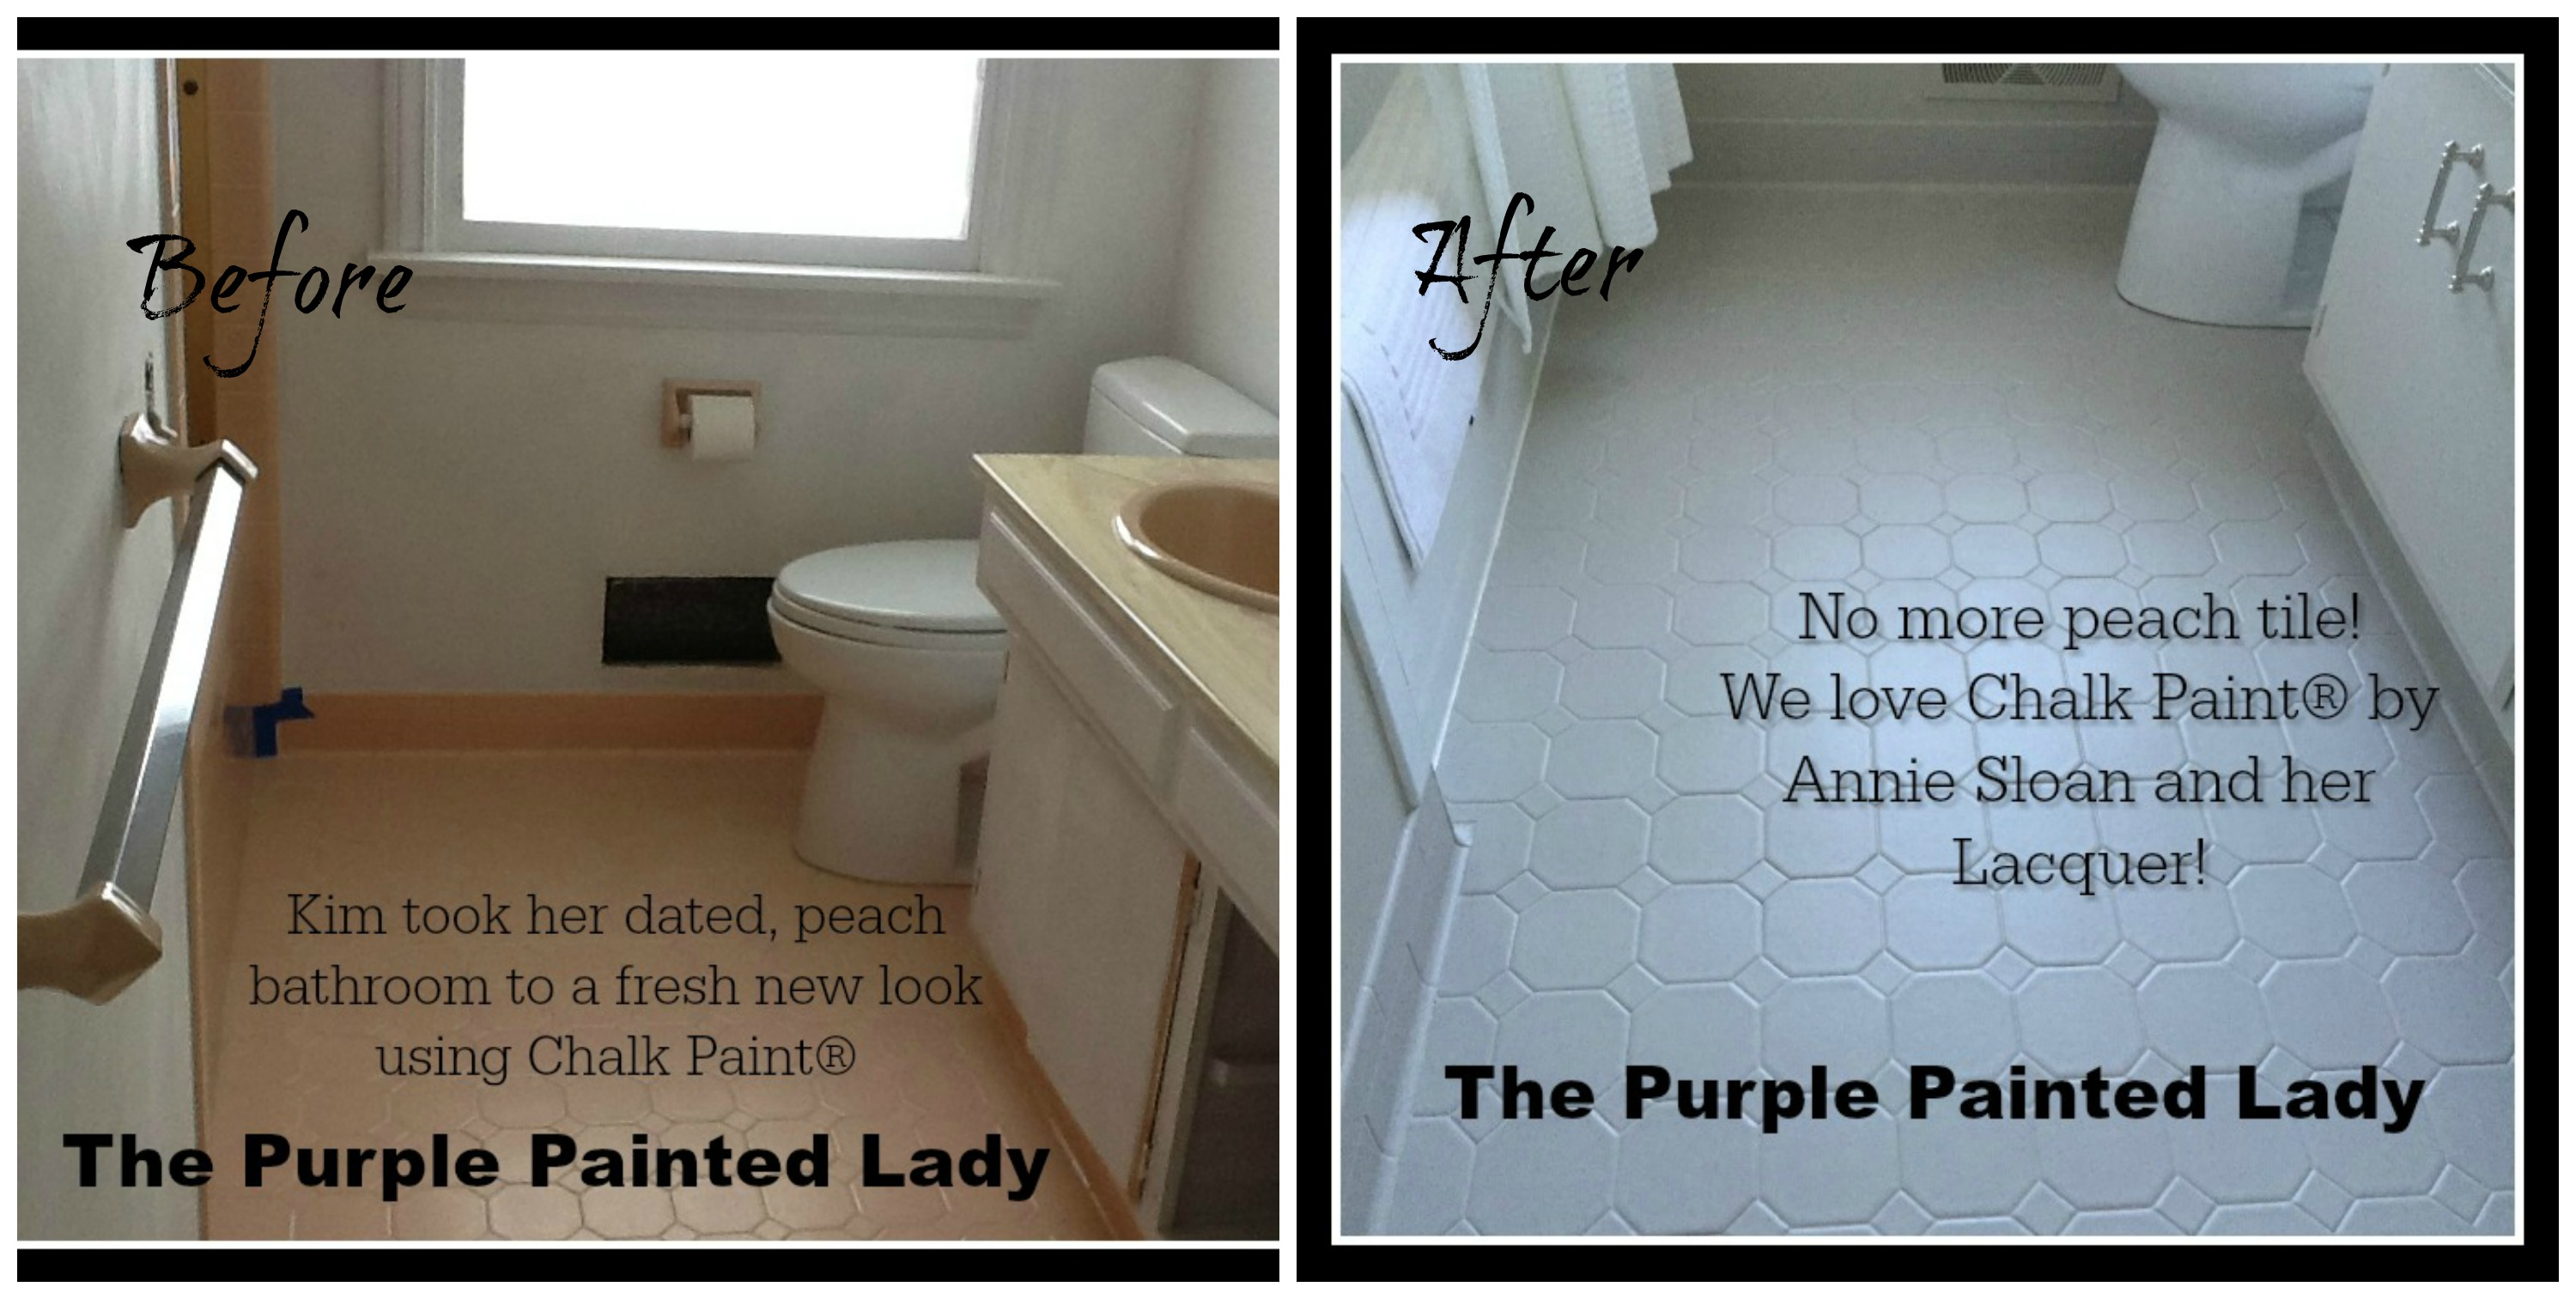 Painting tile in the bathroom with chalk paint the purple the purple painted lady kim gray before after chalk paint annie sloan dailygadgetfo Images